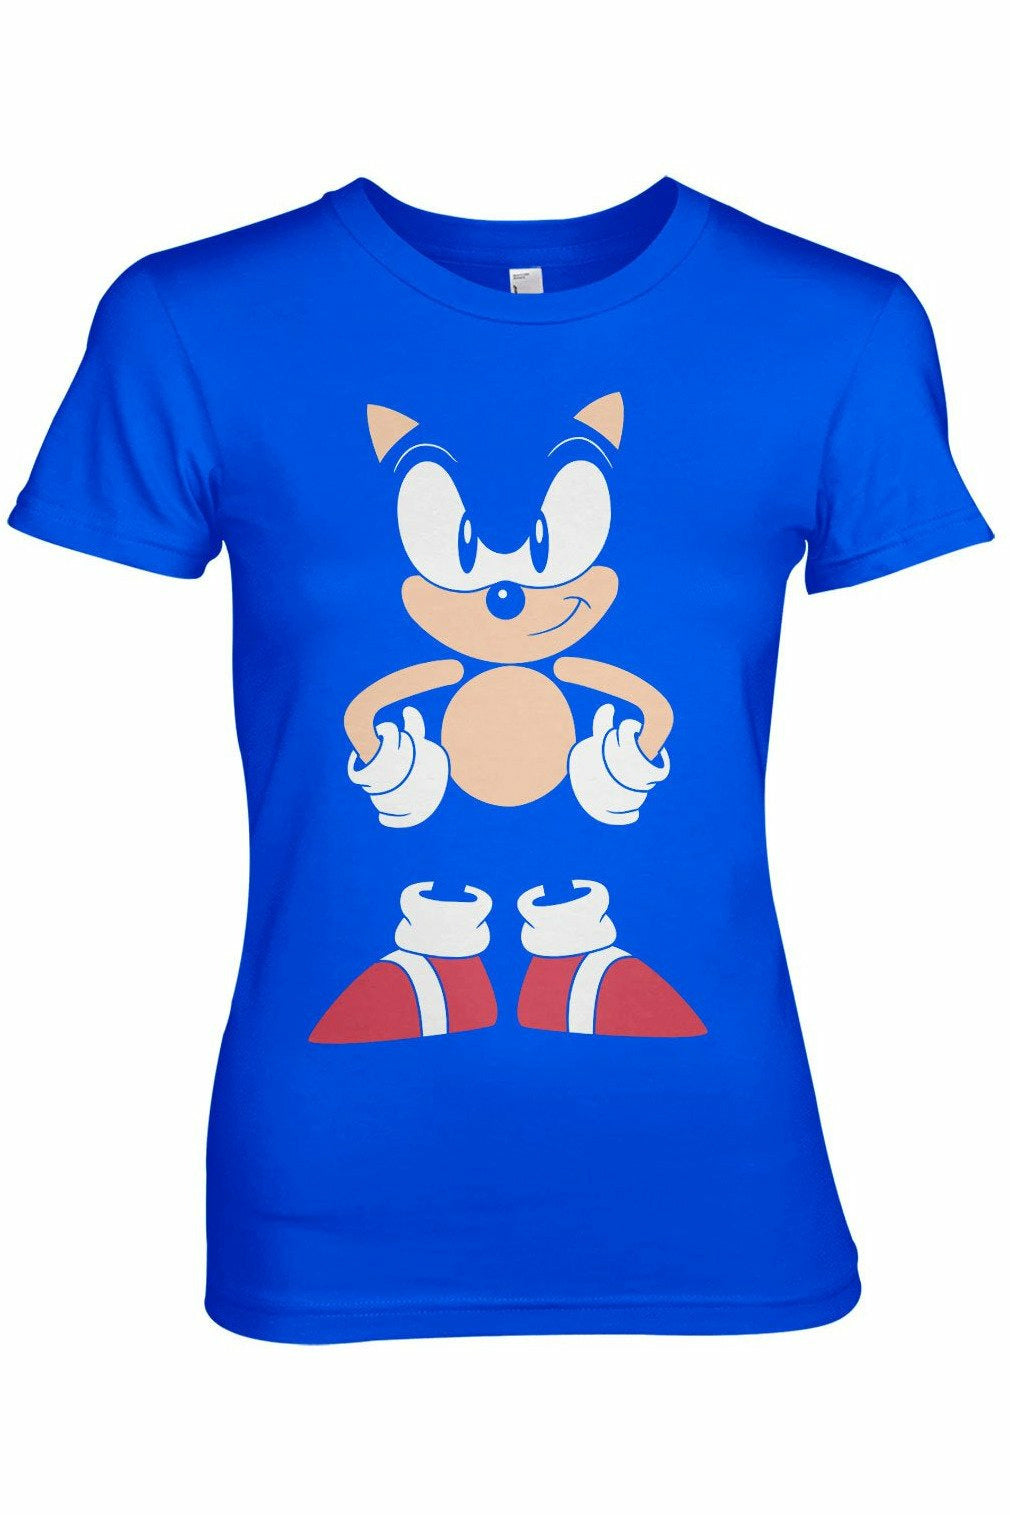 Sonic The Hedgehog Character T-Shirt